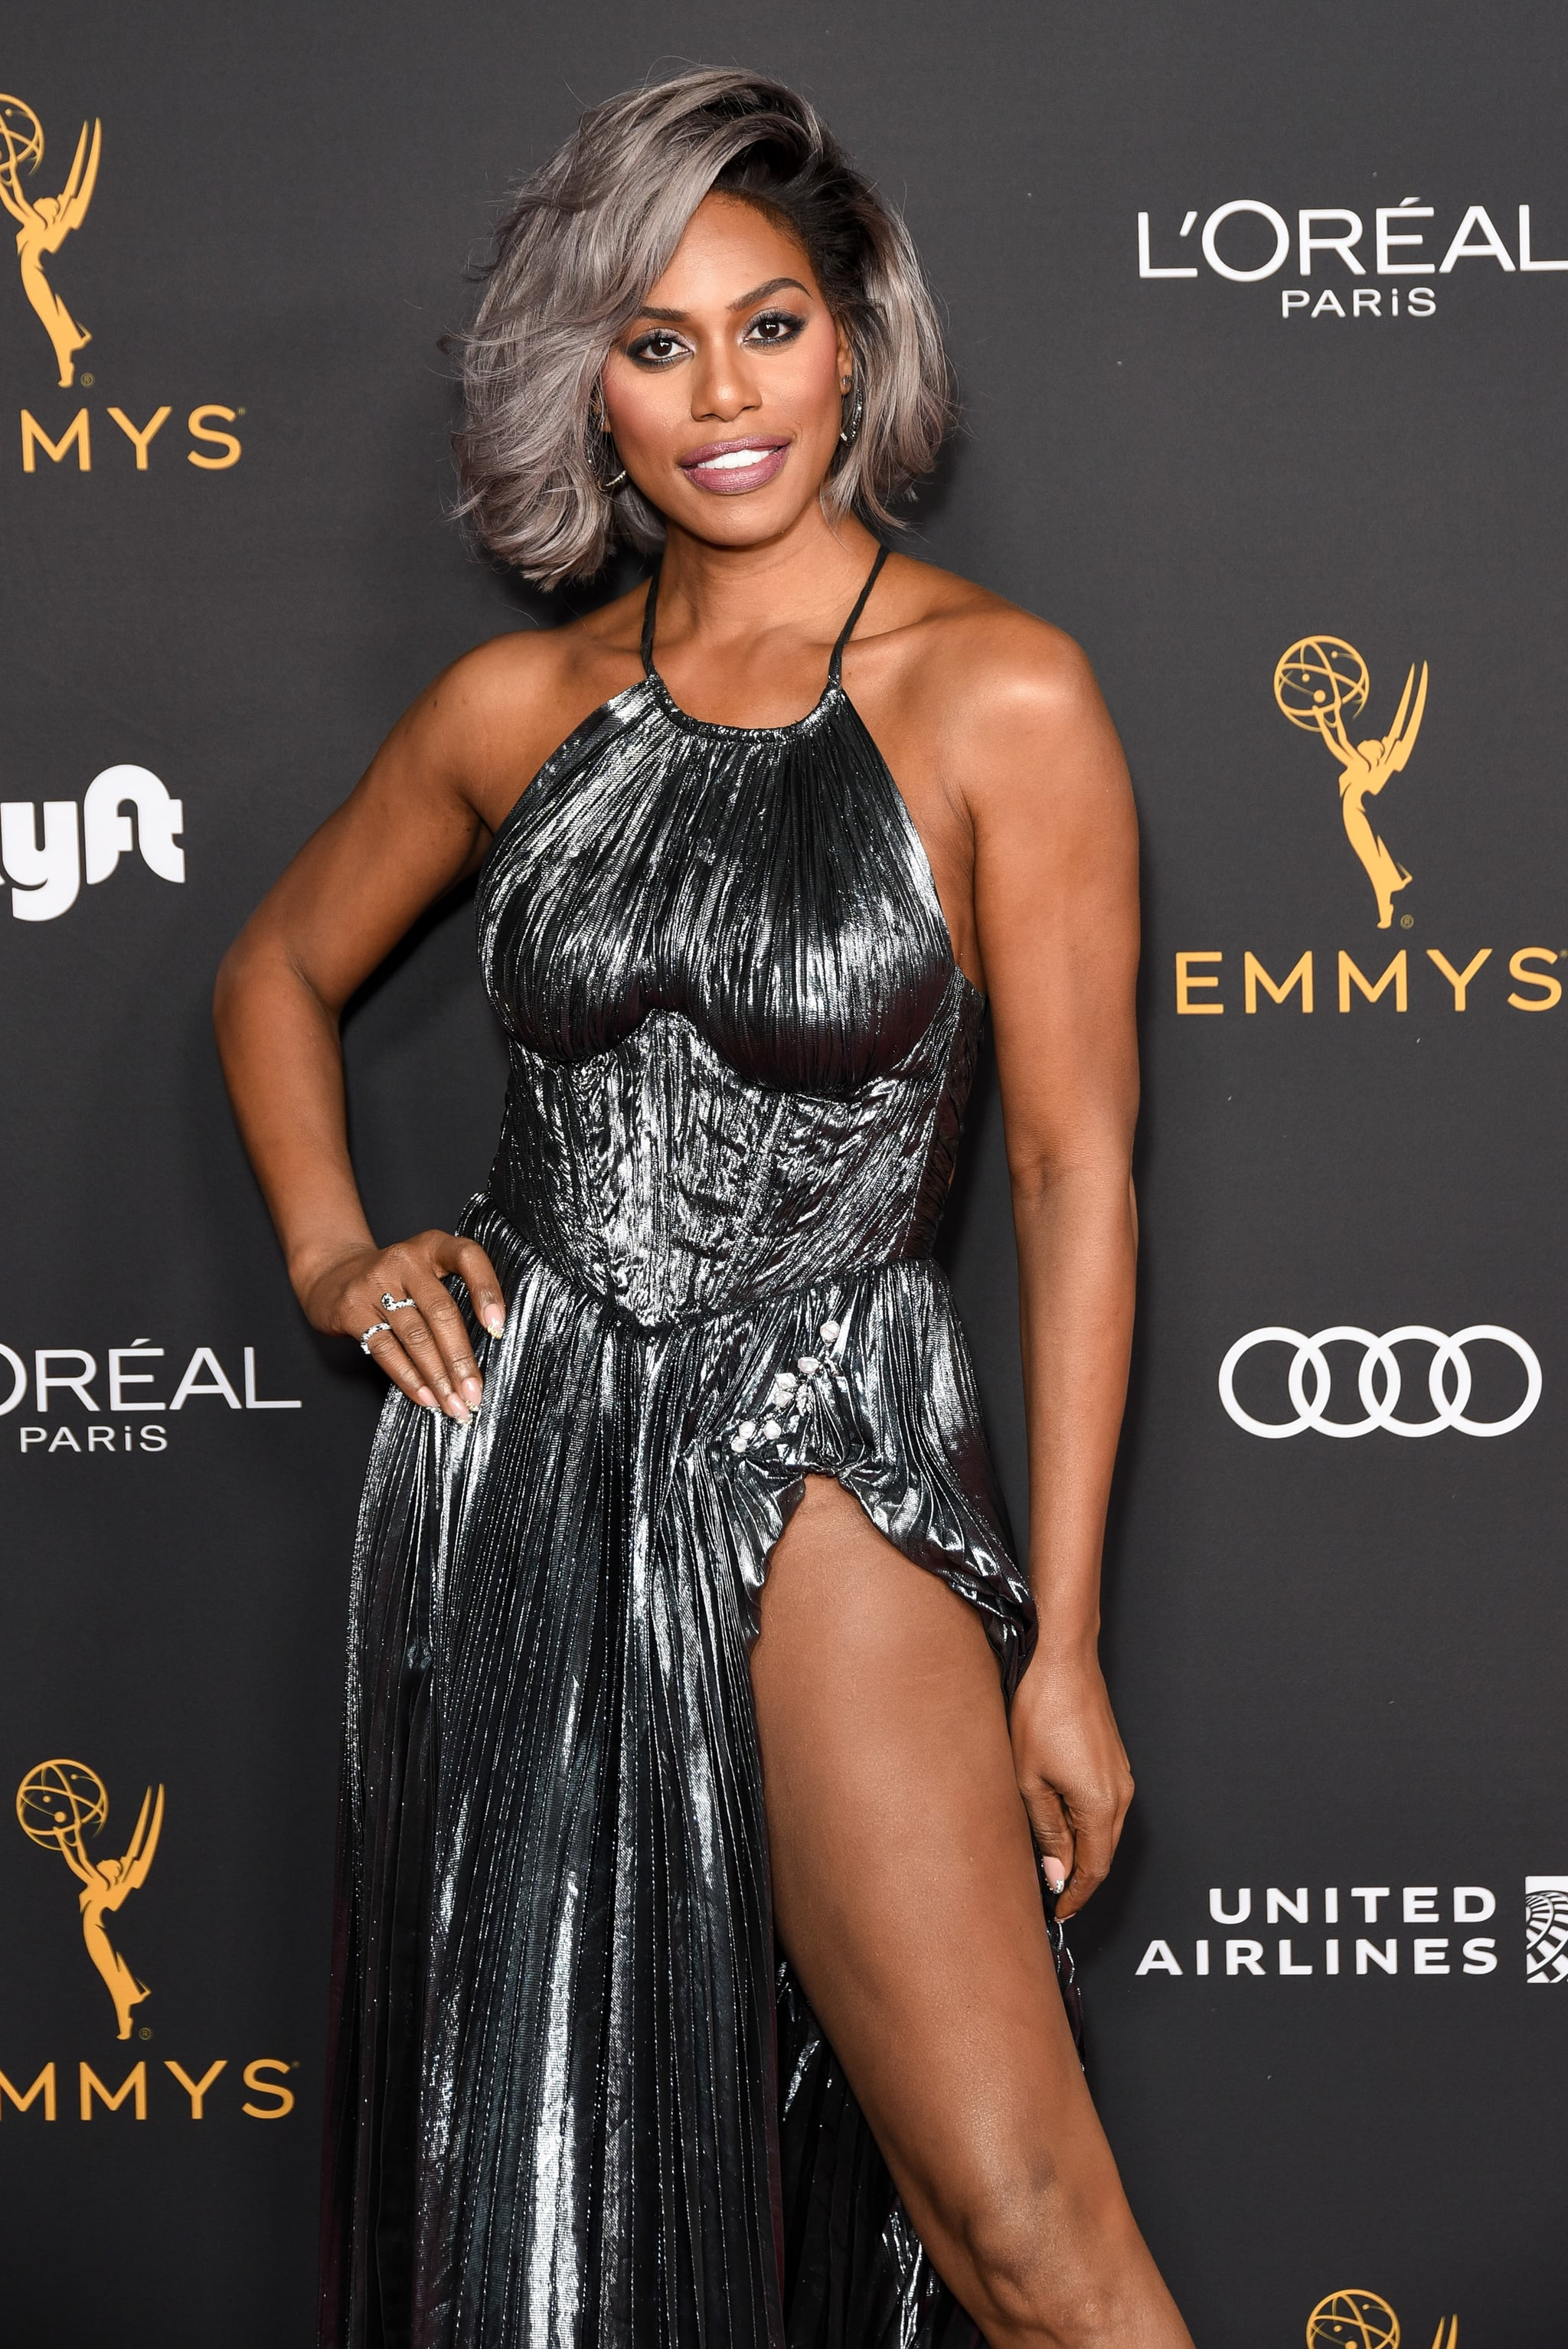 BEVERLY HILLS, CALIFORNIA - SEPTEMBER 20: Laverne Cox attends the Television Academy honours Emmy nominated performers at Wallis Annenberg Centre for the Performing Arts on September 20, 2019 in Beverly Hills, California. (Photo by Presley Ann/WireImage)